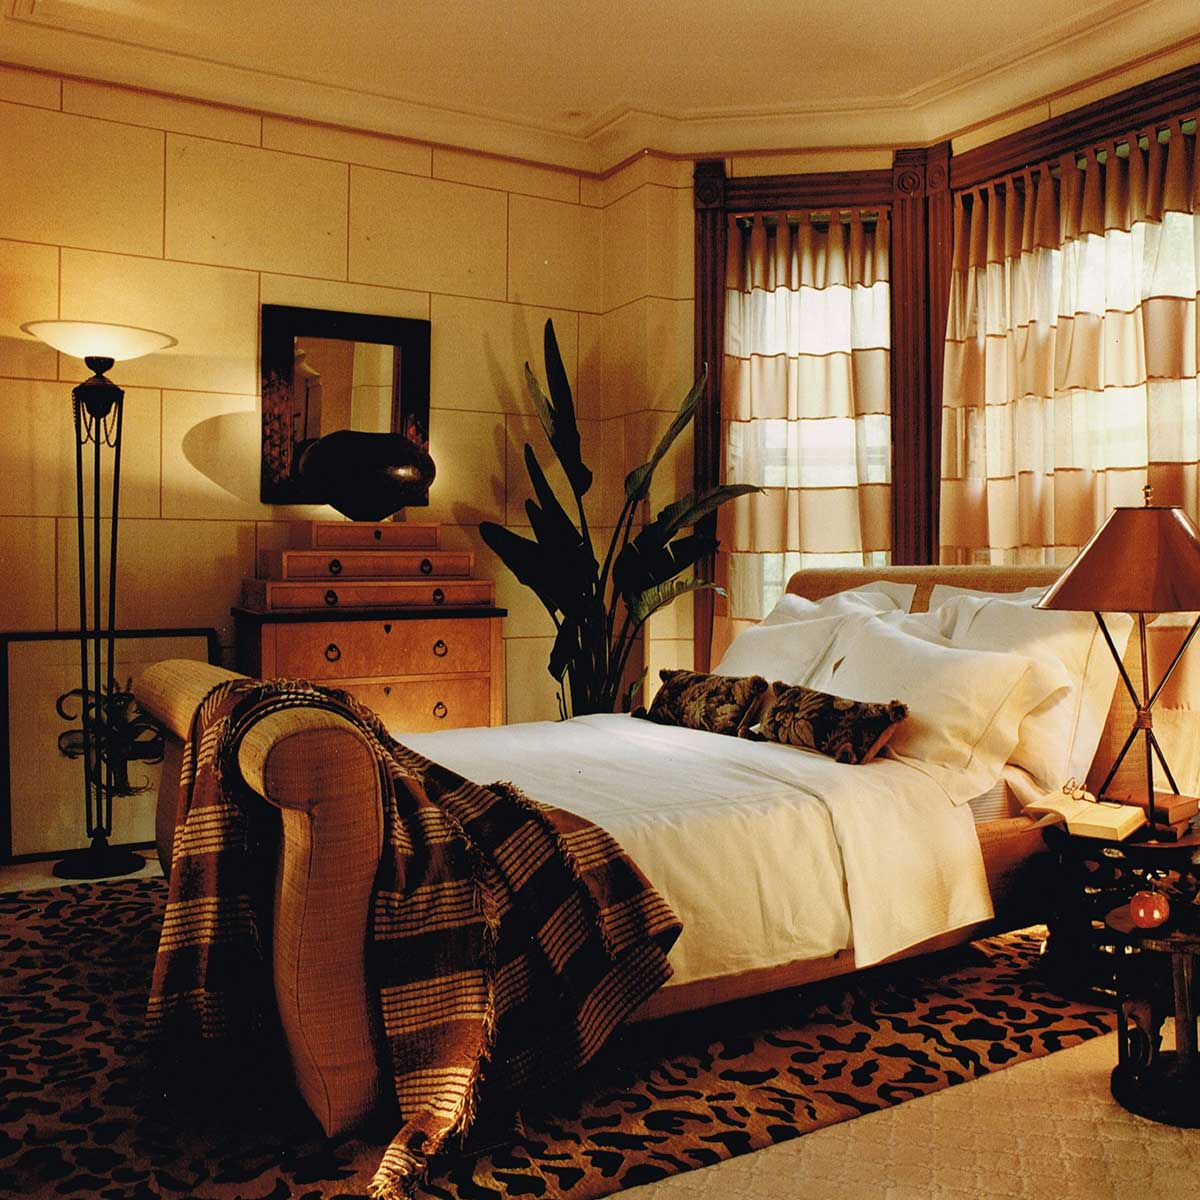 Fullerton-Bedroom-2.jpg